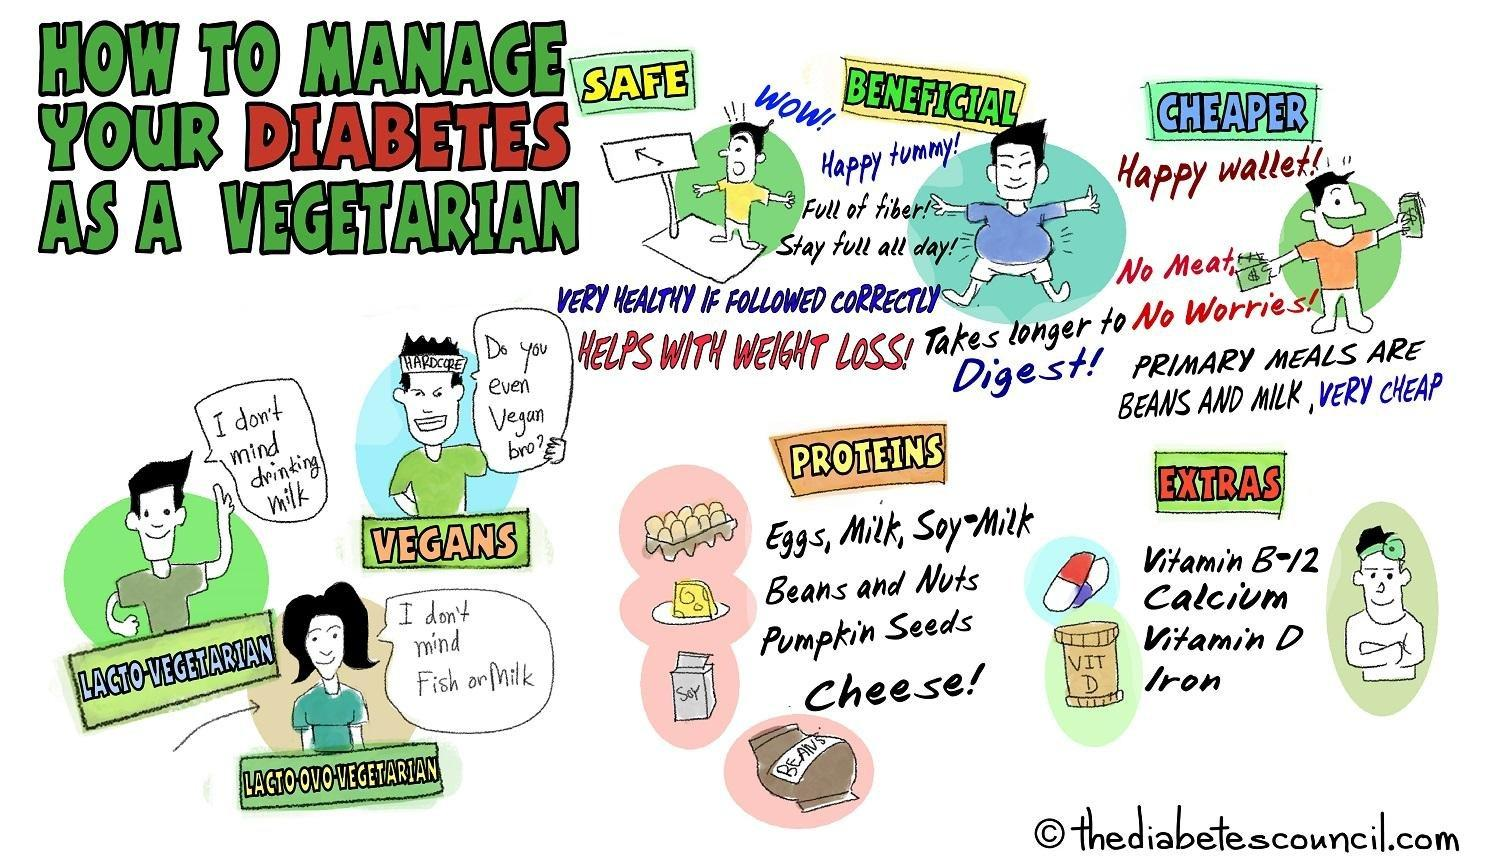 How To Manage Your Diabetes As A Vegetarian